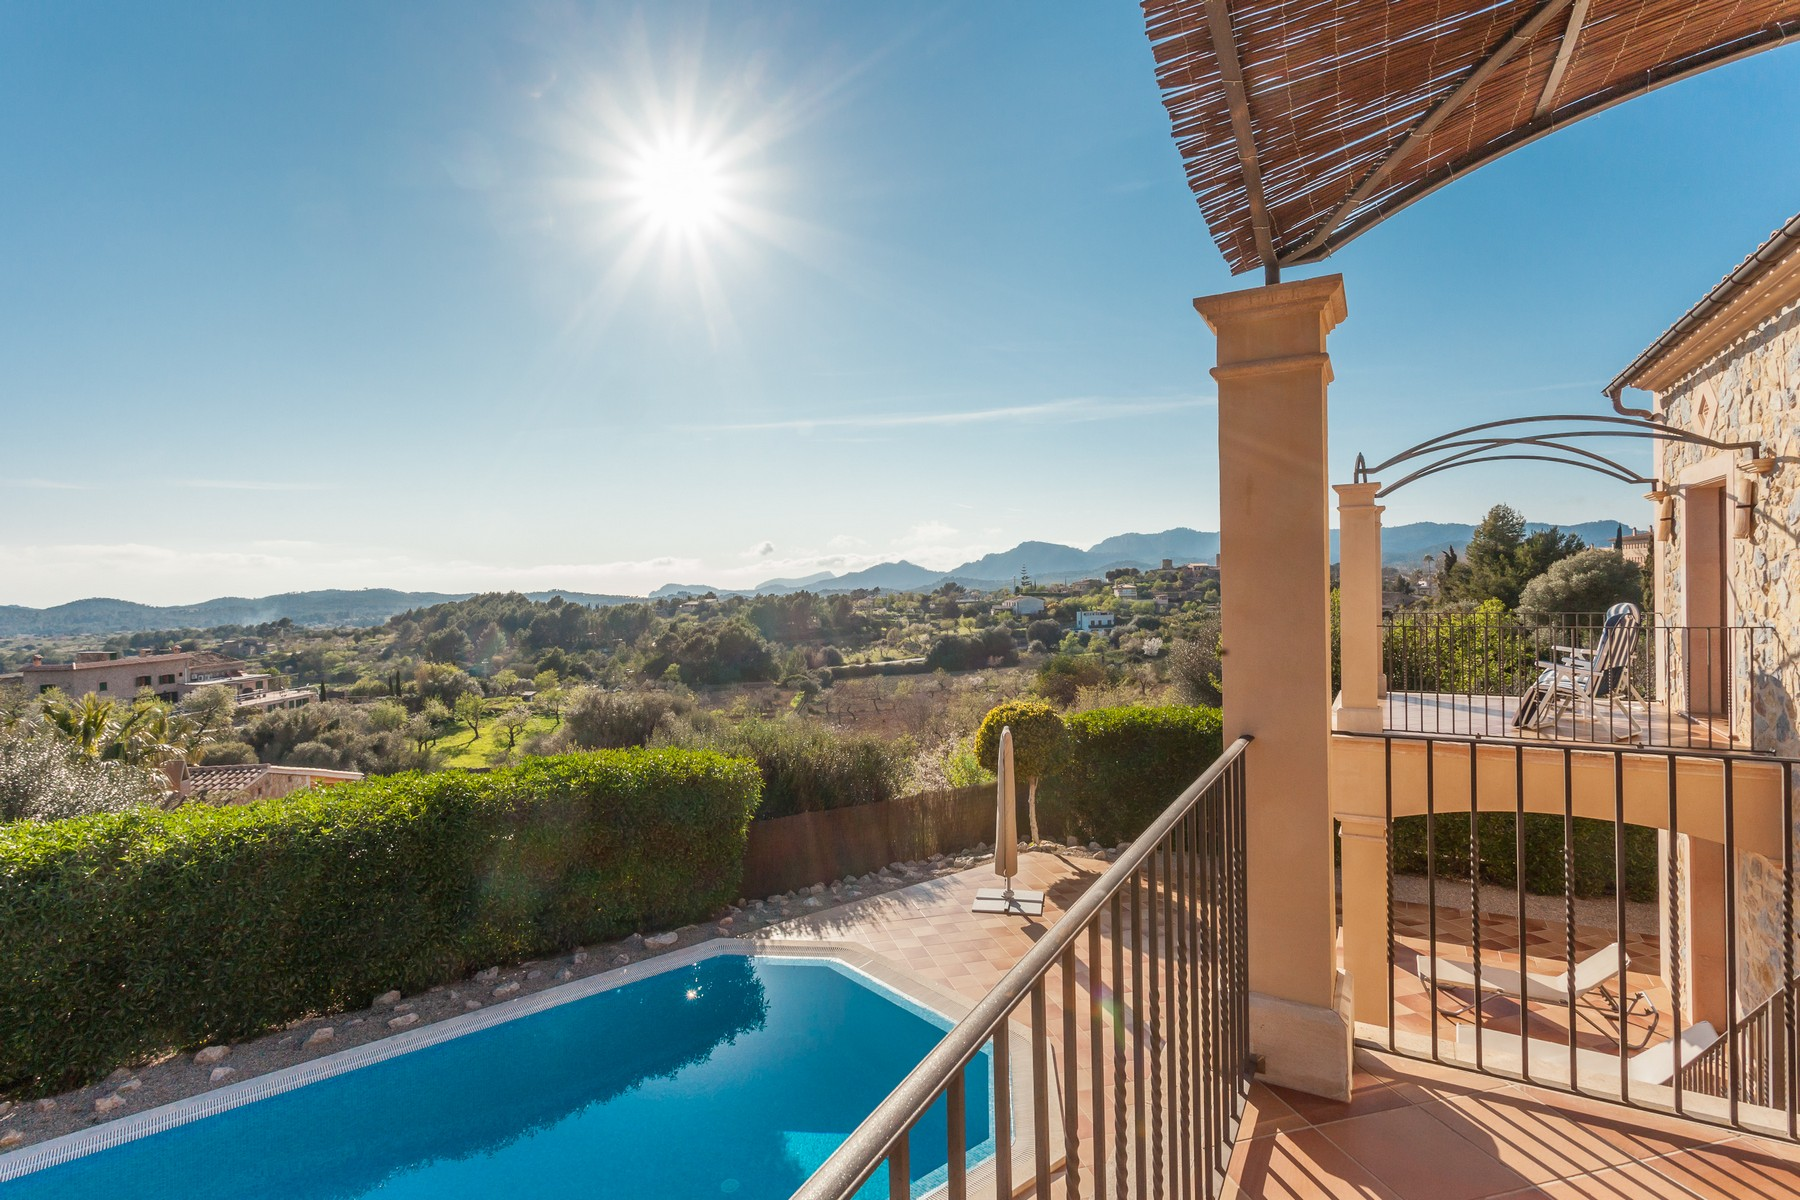 Casa Unifamiliar por un Venta en Finca en Calvia with views of the mountains Calvia, Mallorca 07184 España